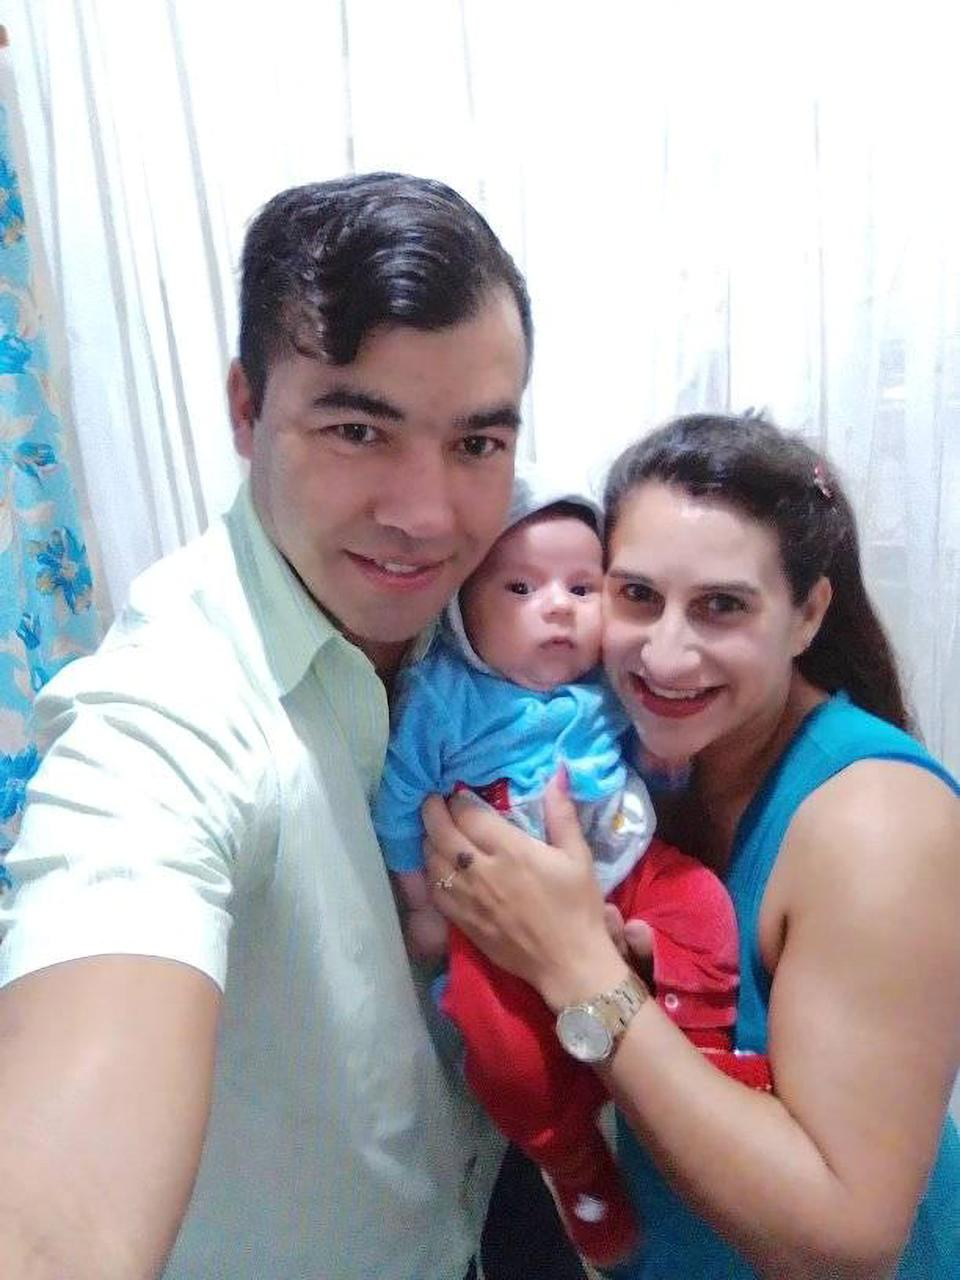 Luiz Edivaldo de Souza is accused of killing his wife and baby son last year. Source: Newsflash/ Australscope